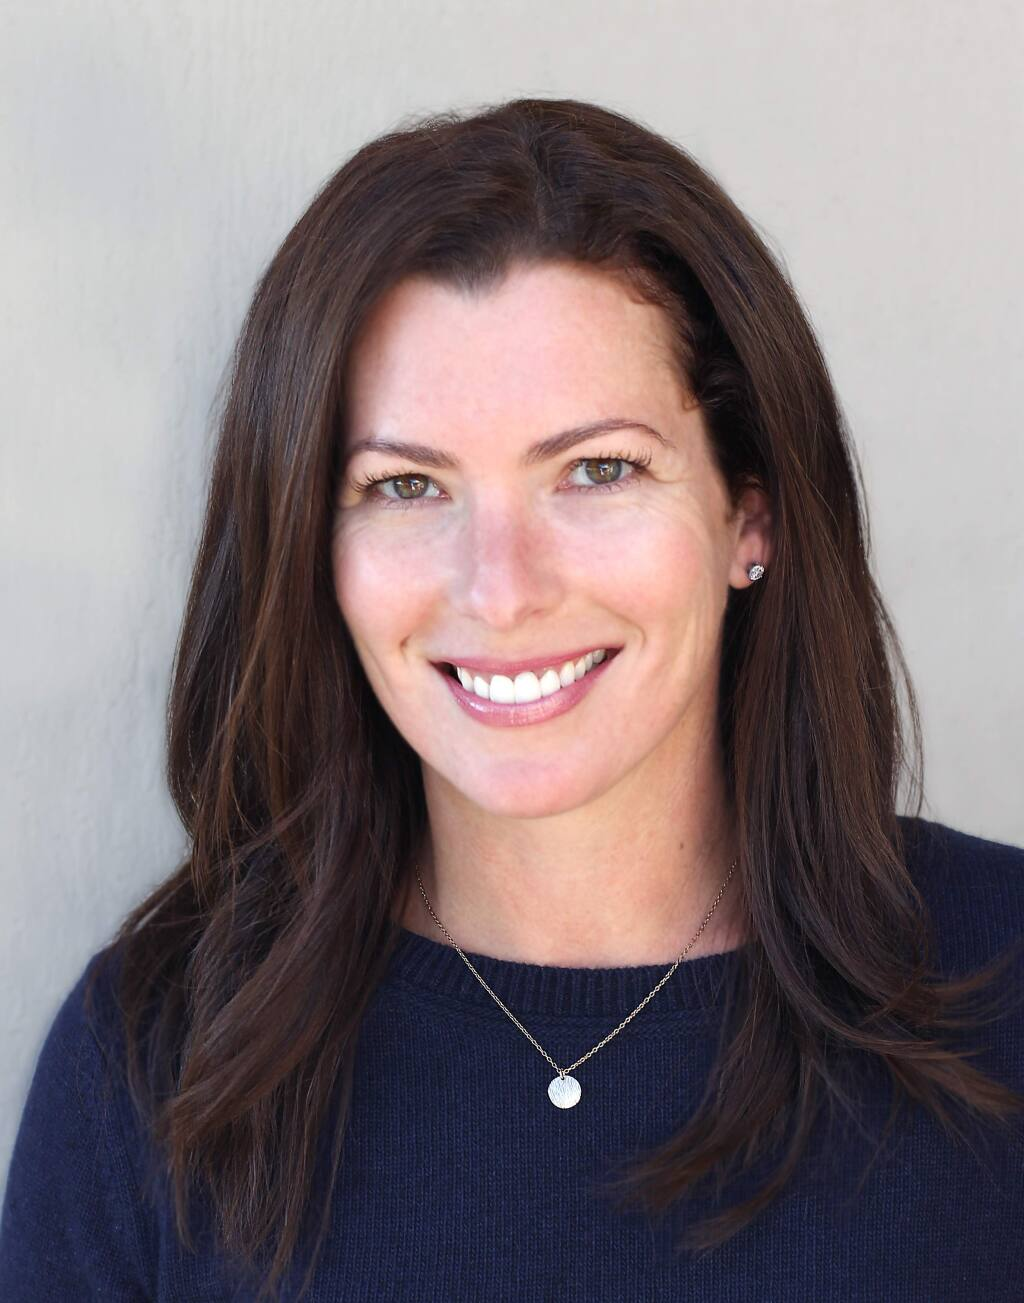 Joanie Claussen, 39, CEO of Taylor Lane Organic Coffee in Sebastopol, is one of North Bay Business Journal's Forty Under 40 notable young professionals for 2019. (PROVIDED PHOTO)